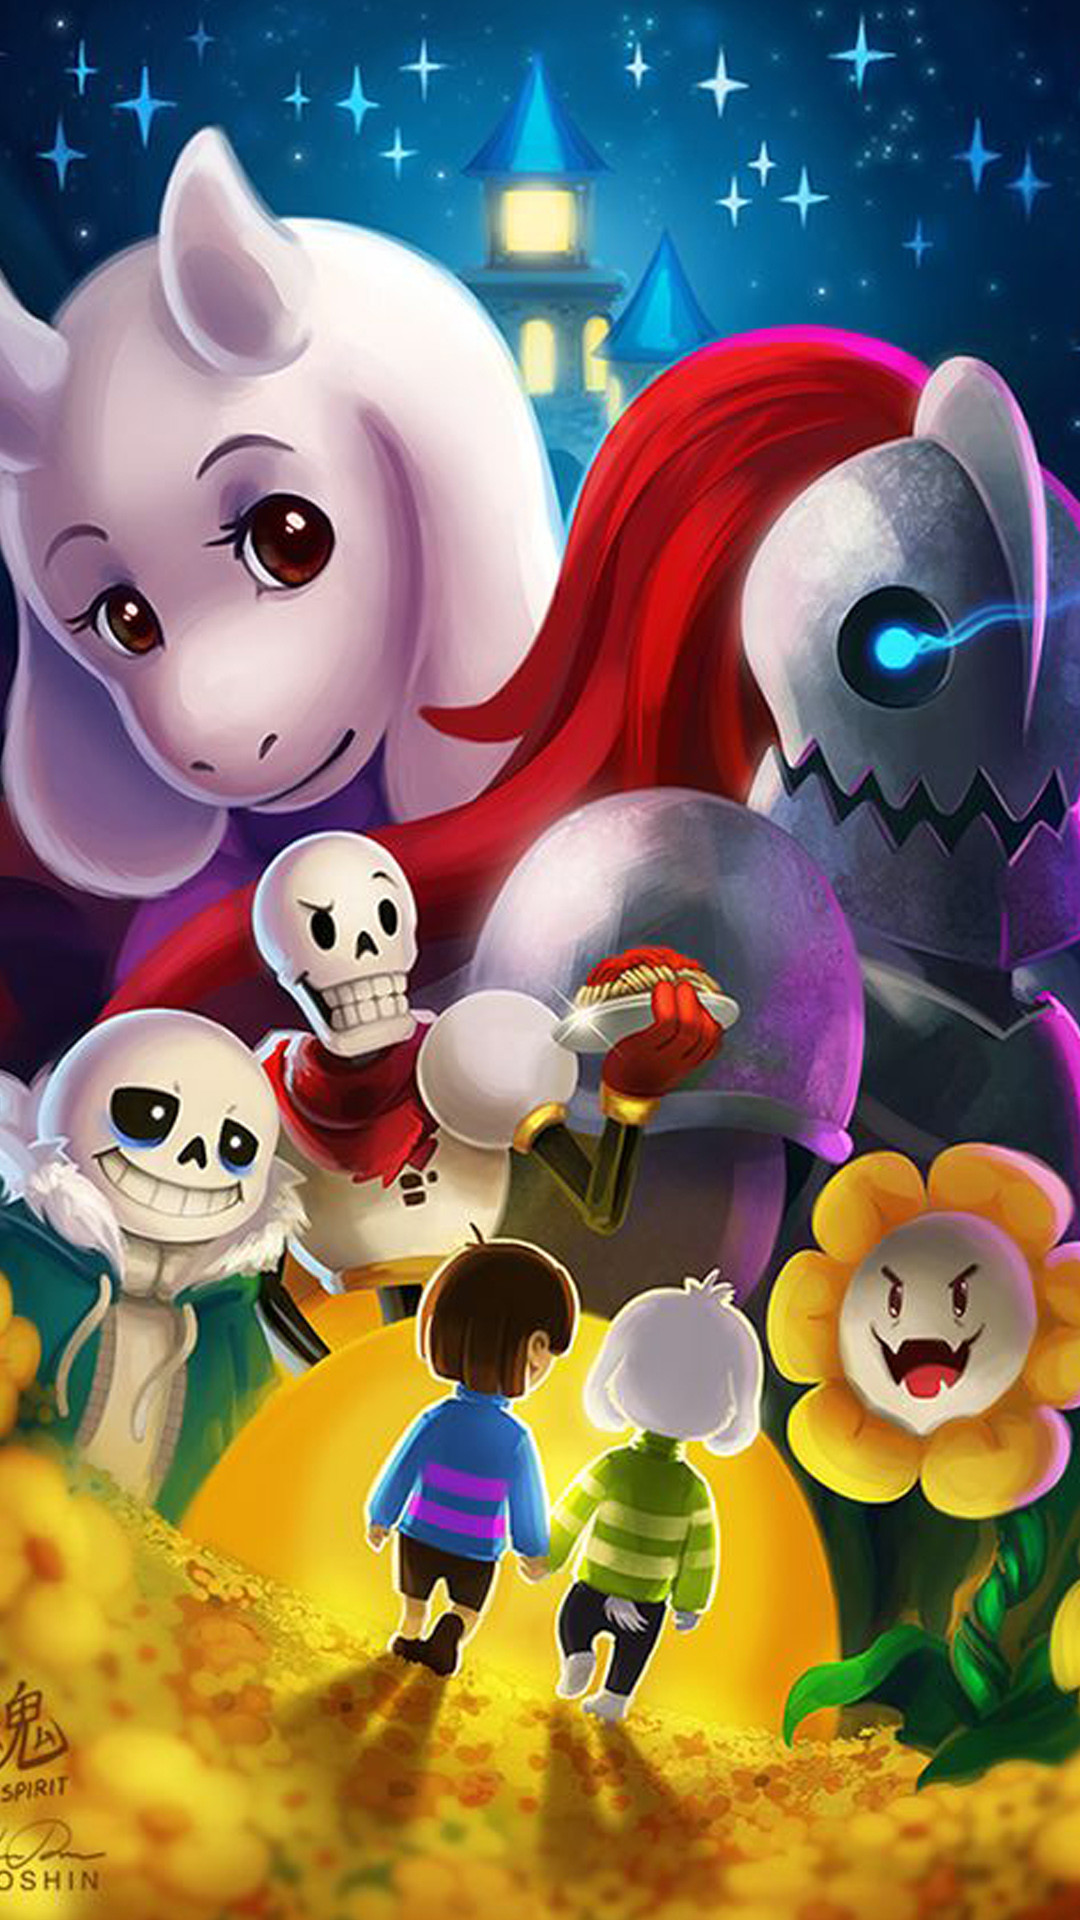 Undertale wallpapers for iphone 5 Undertale wallpapers and backgrounds